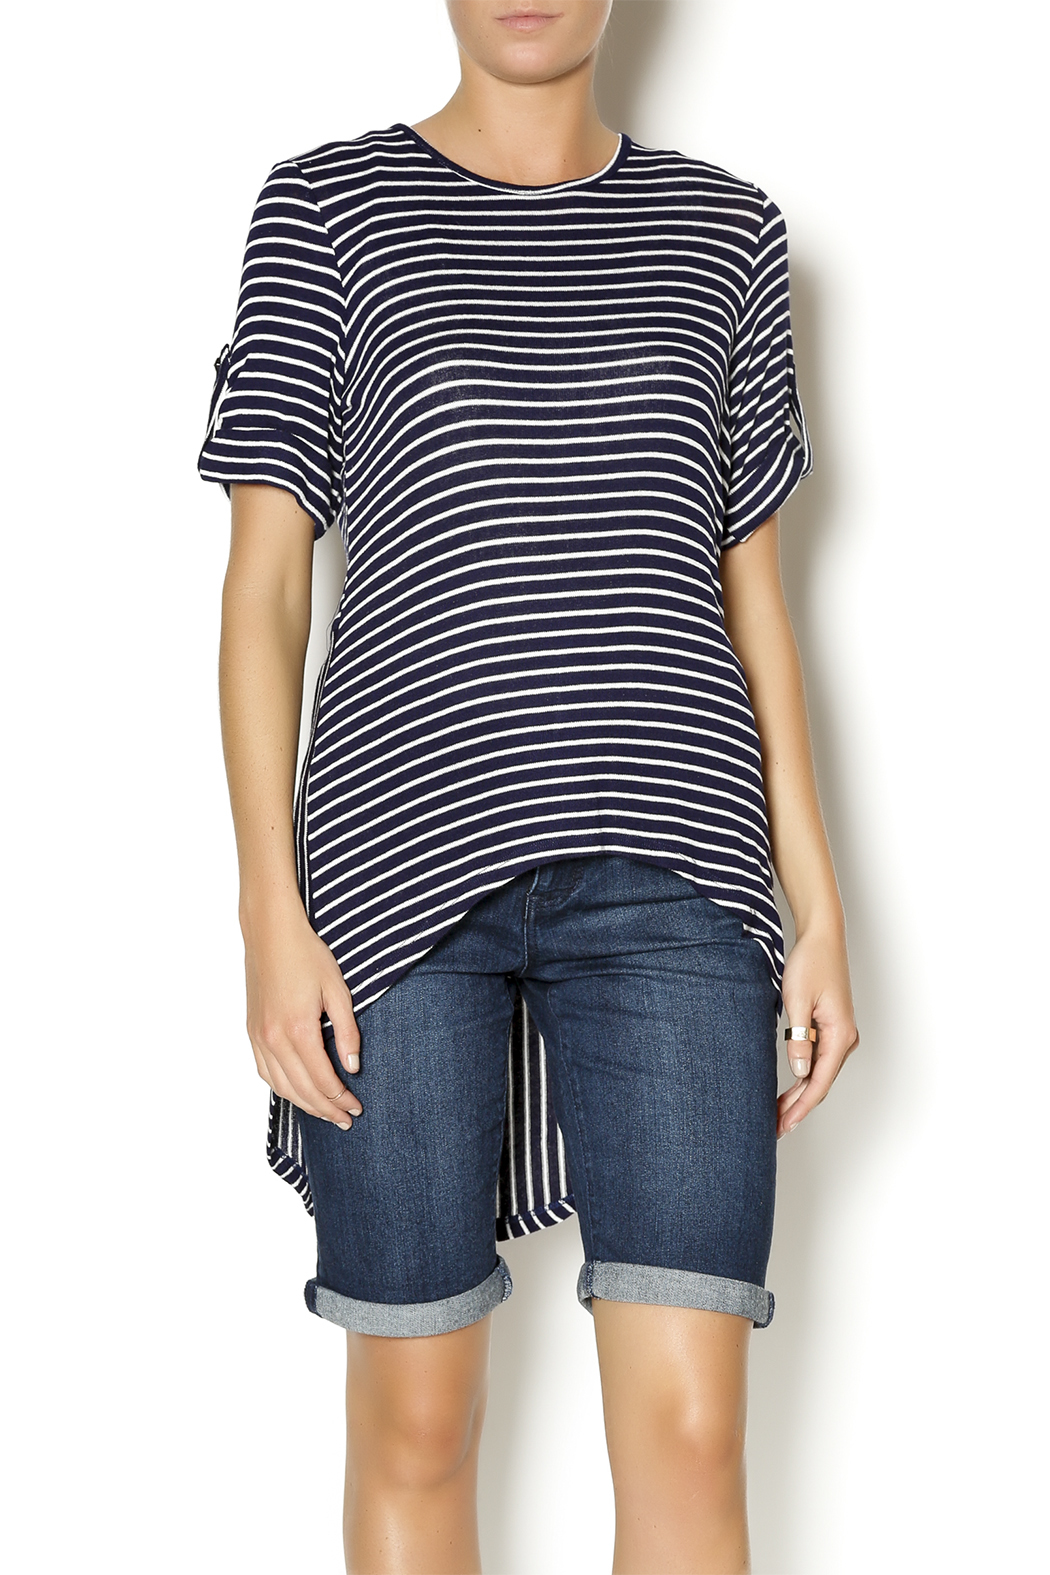 Mesmerize Striped High Low Top - Main Image